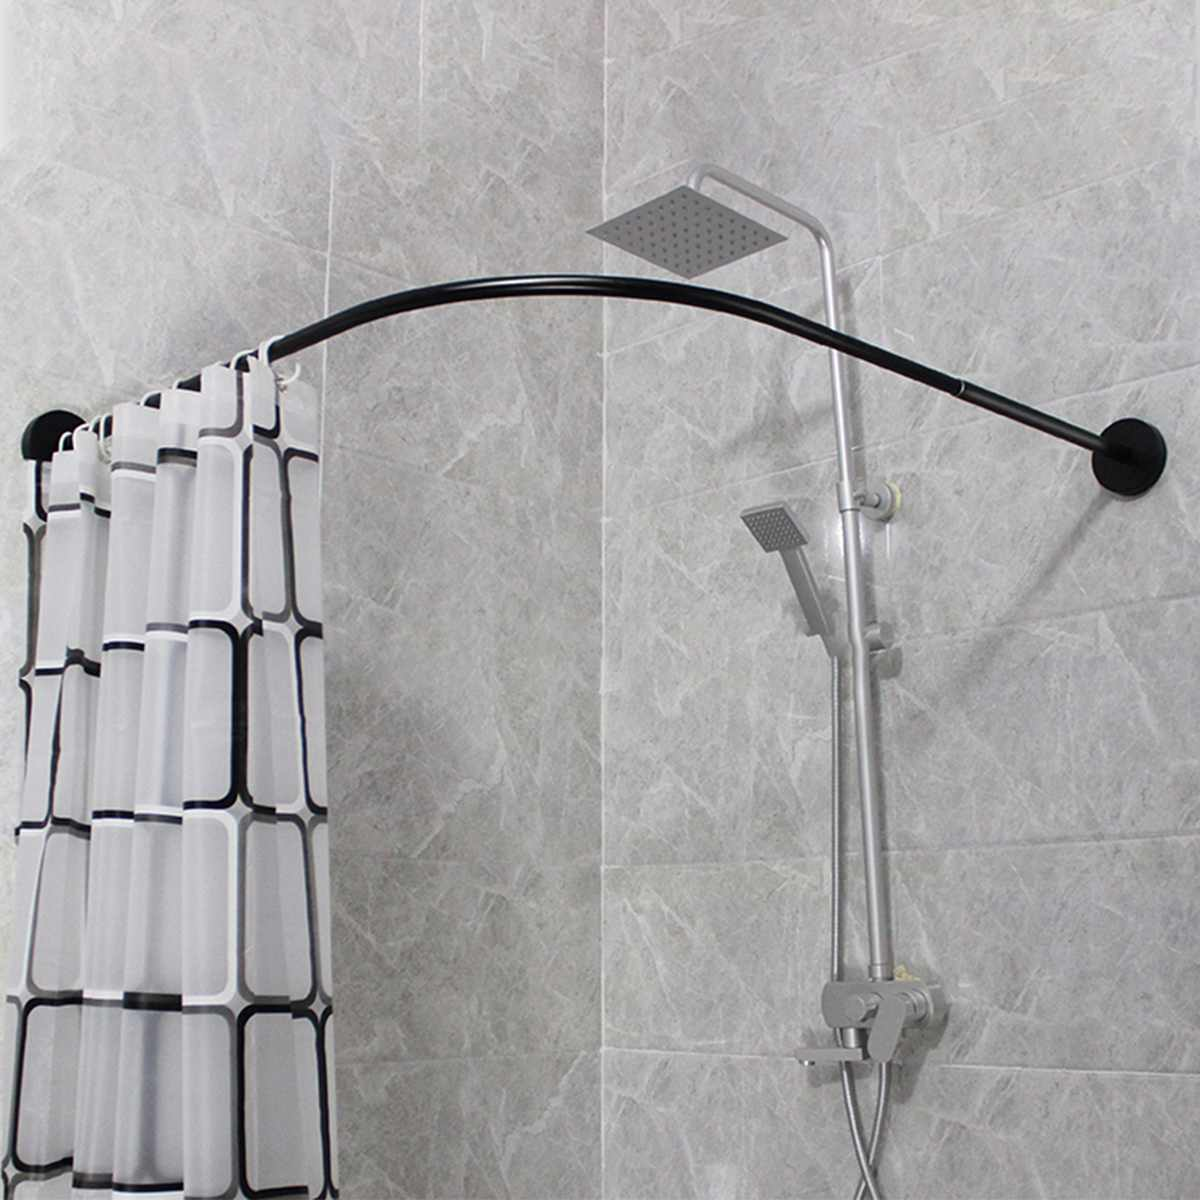 Extendable Corner Shower Curtain Rod Pole 90 130cm Stainless Steel ...